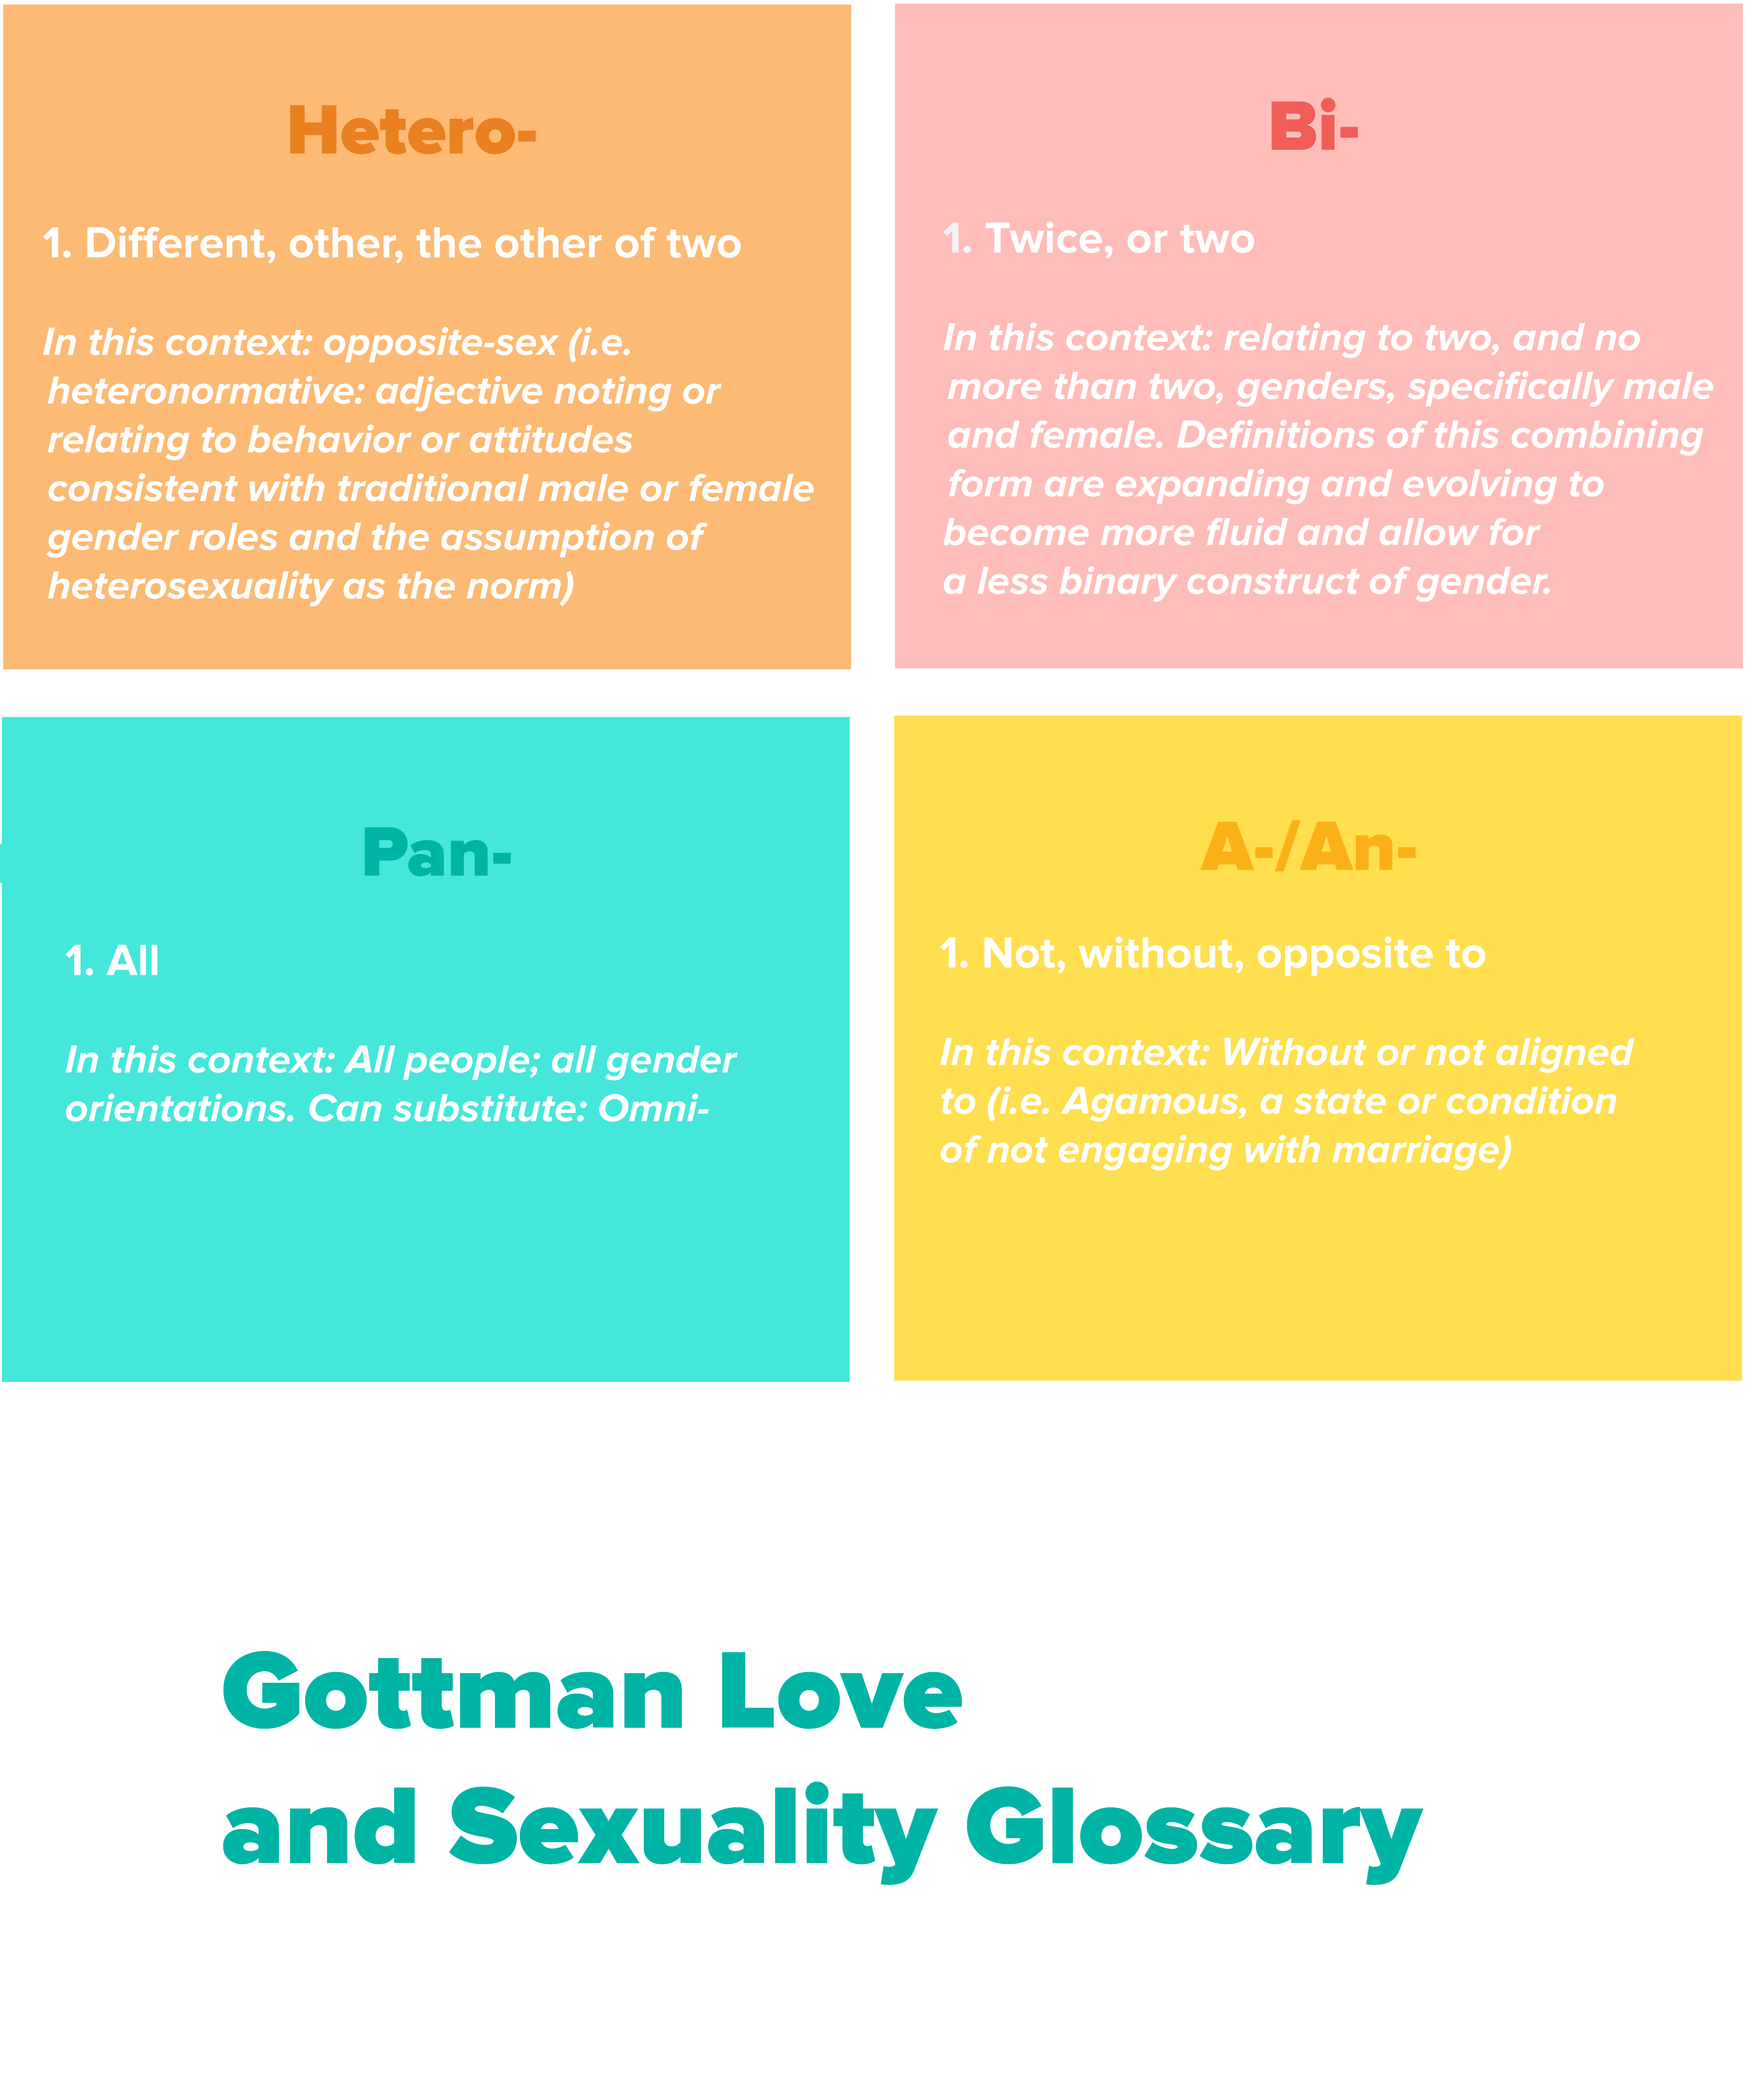 Gottman Love and Sexuality Glossary Prefixes